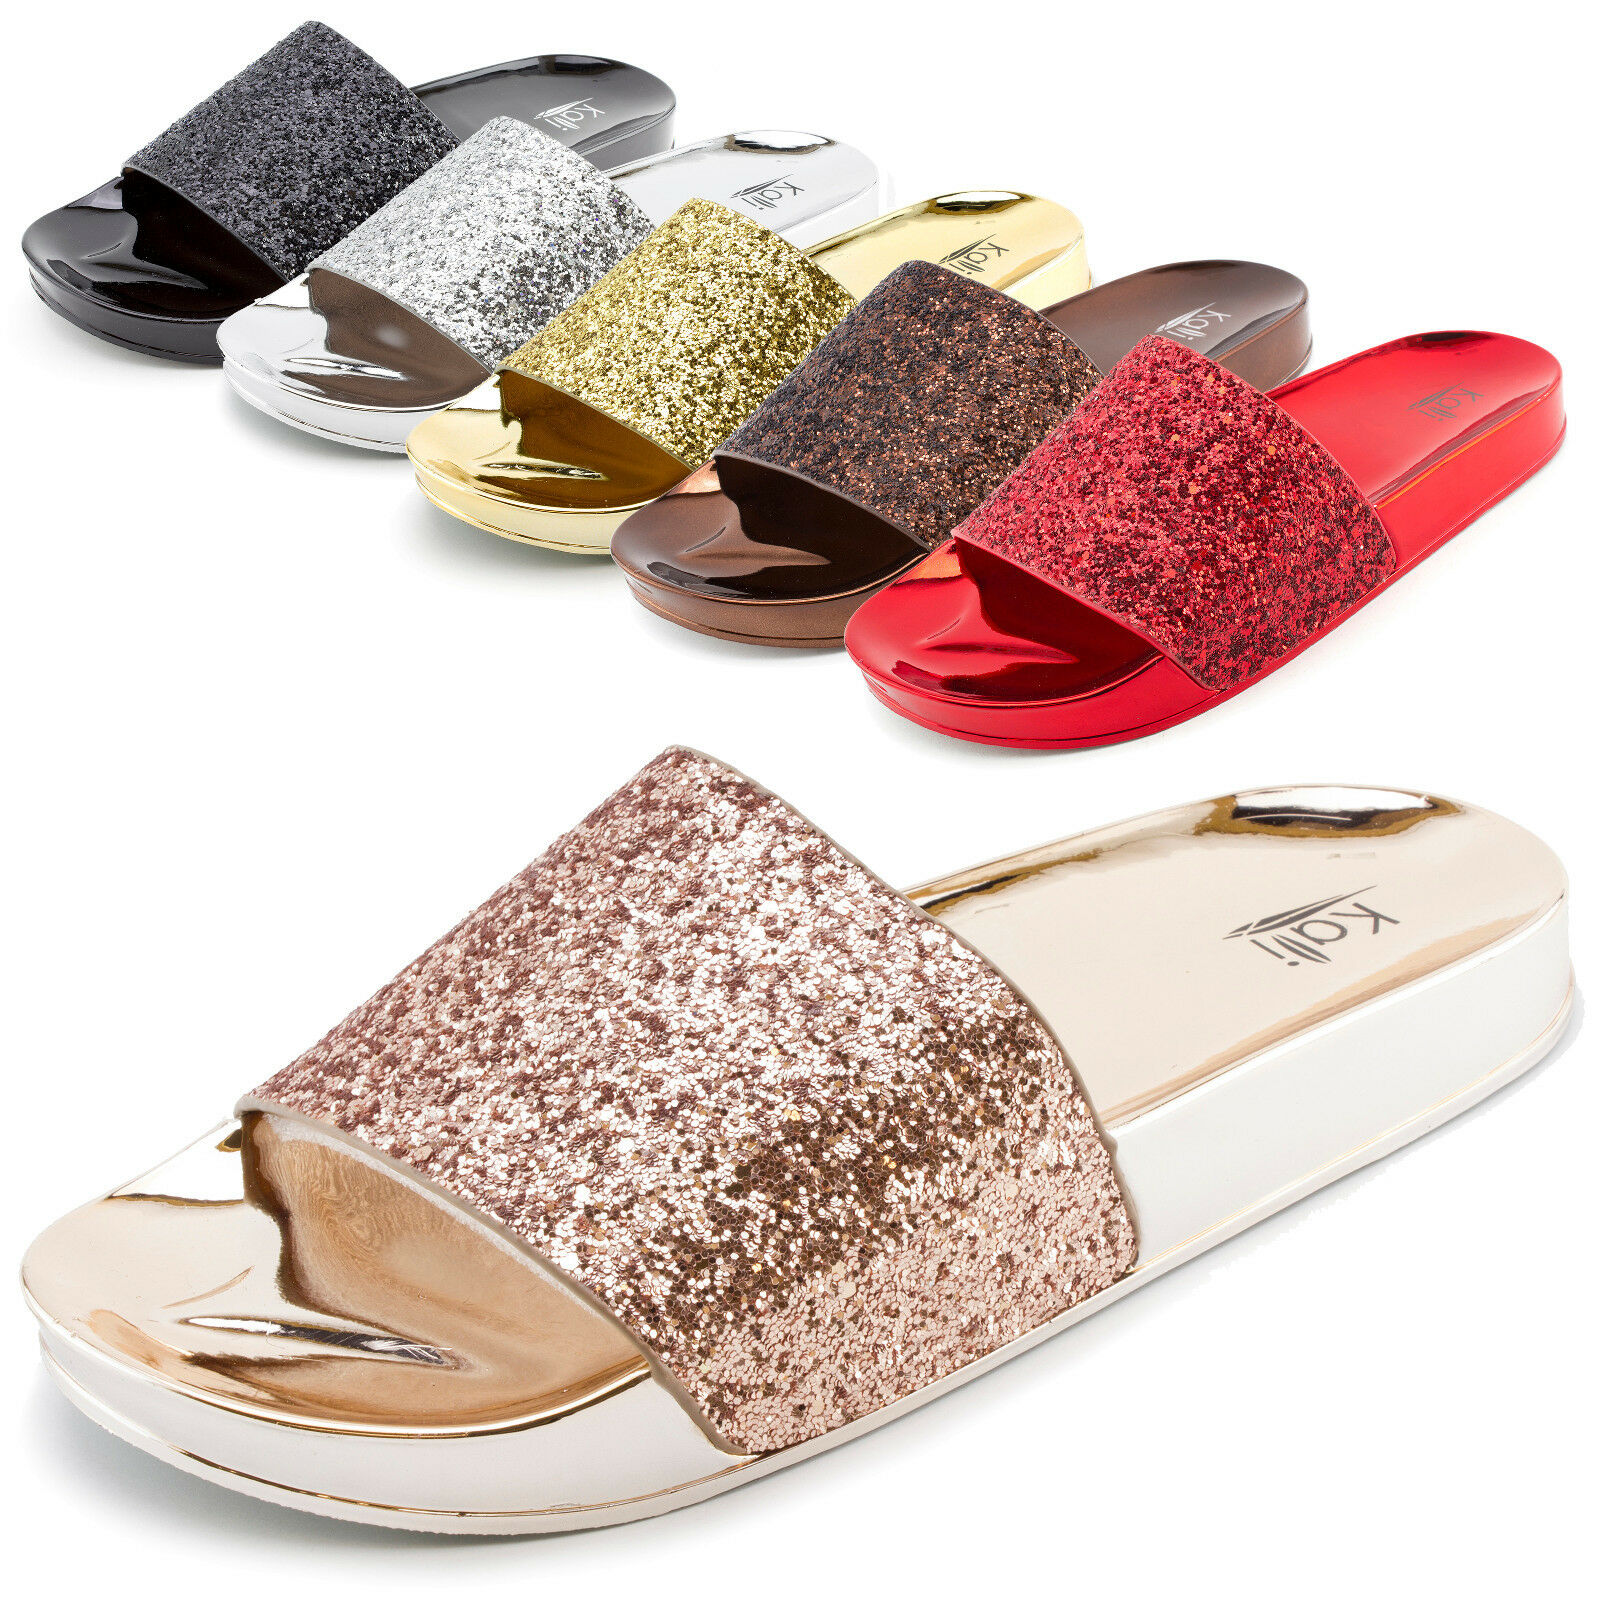 Kali Womens Wide Slide Glitter Band Slip On Slide Wide Sandals Star (Adults 6 7 8 9 10 11) 86a4af